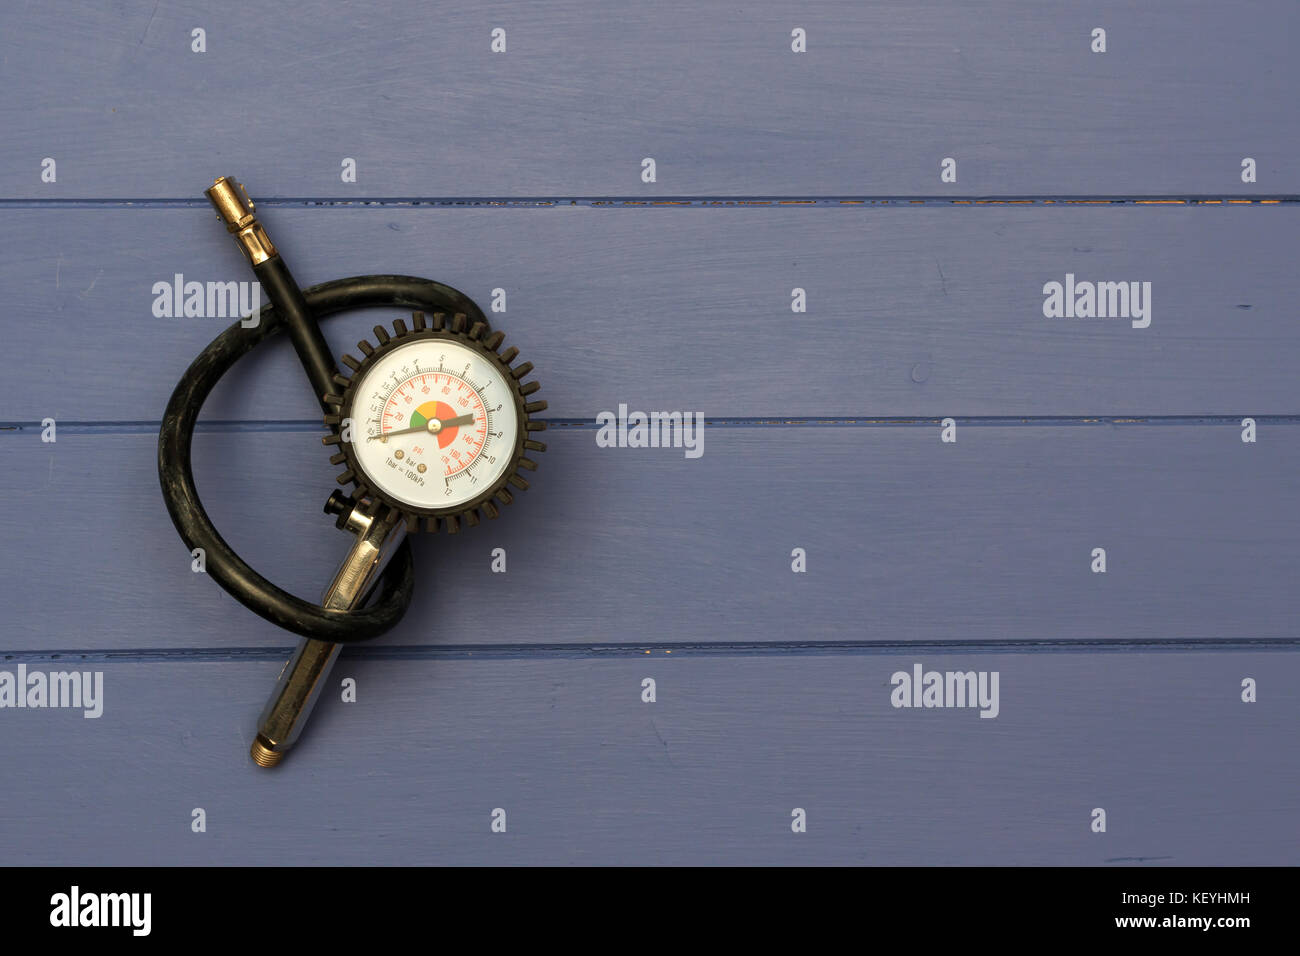 Tyre Inflater with air pressure gauge on blue wooden boards Stock Photo